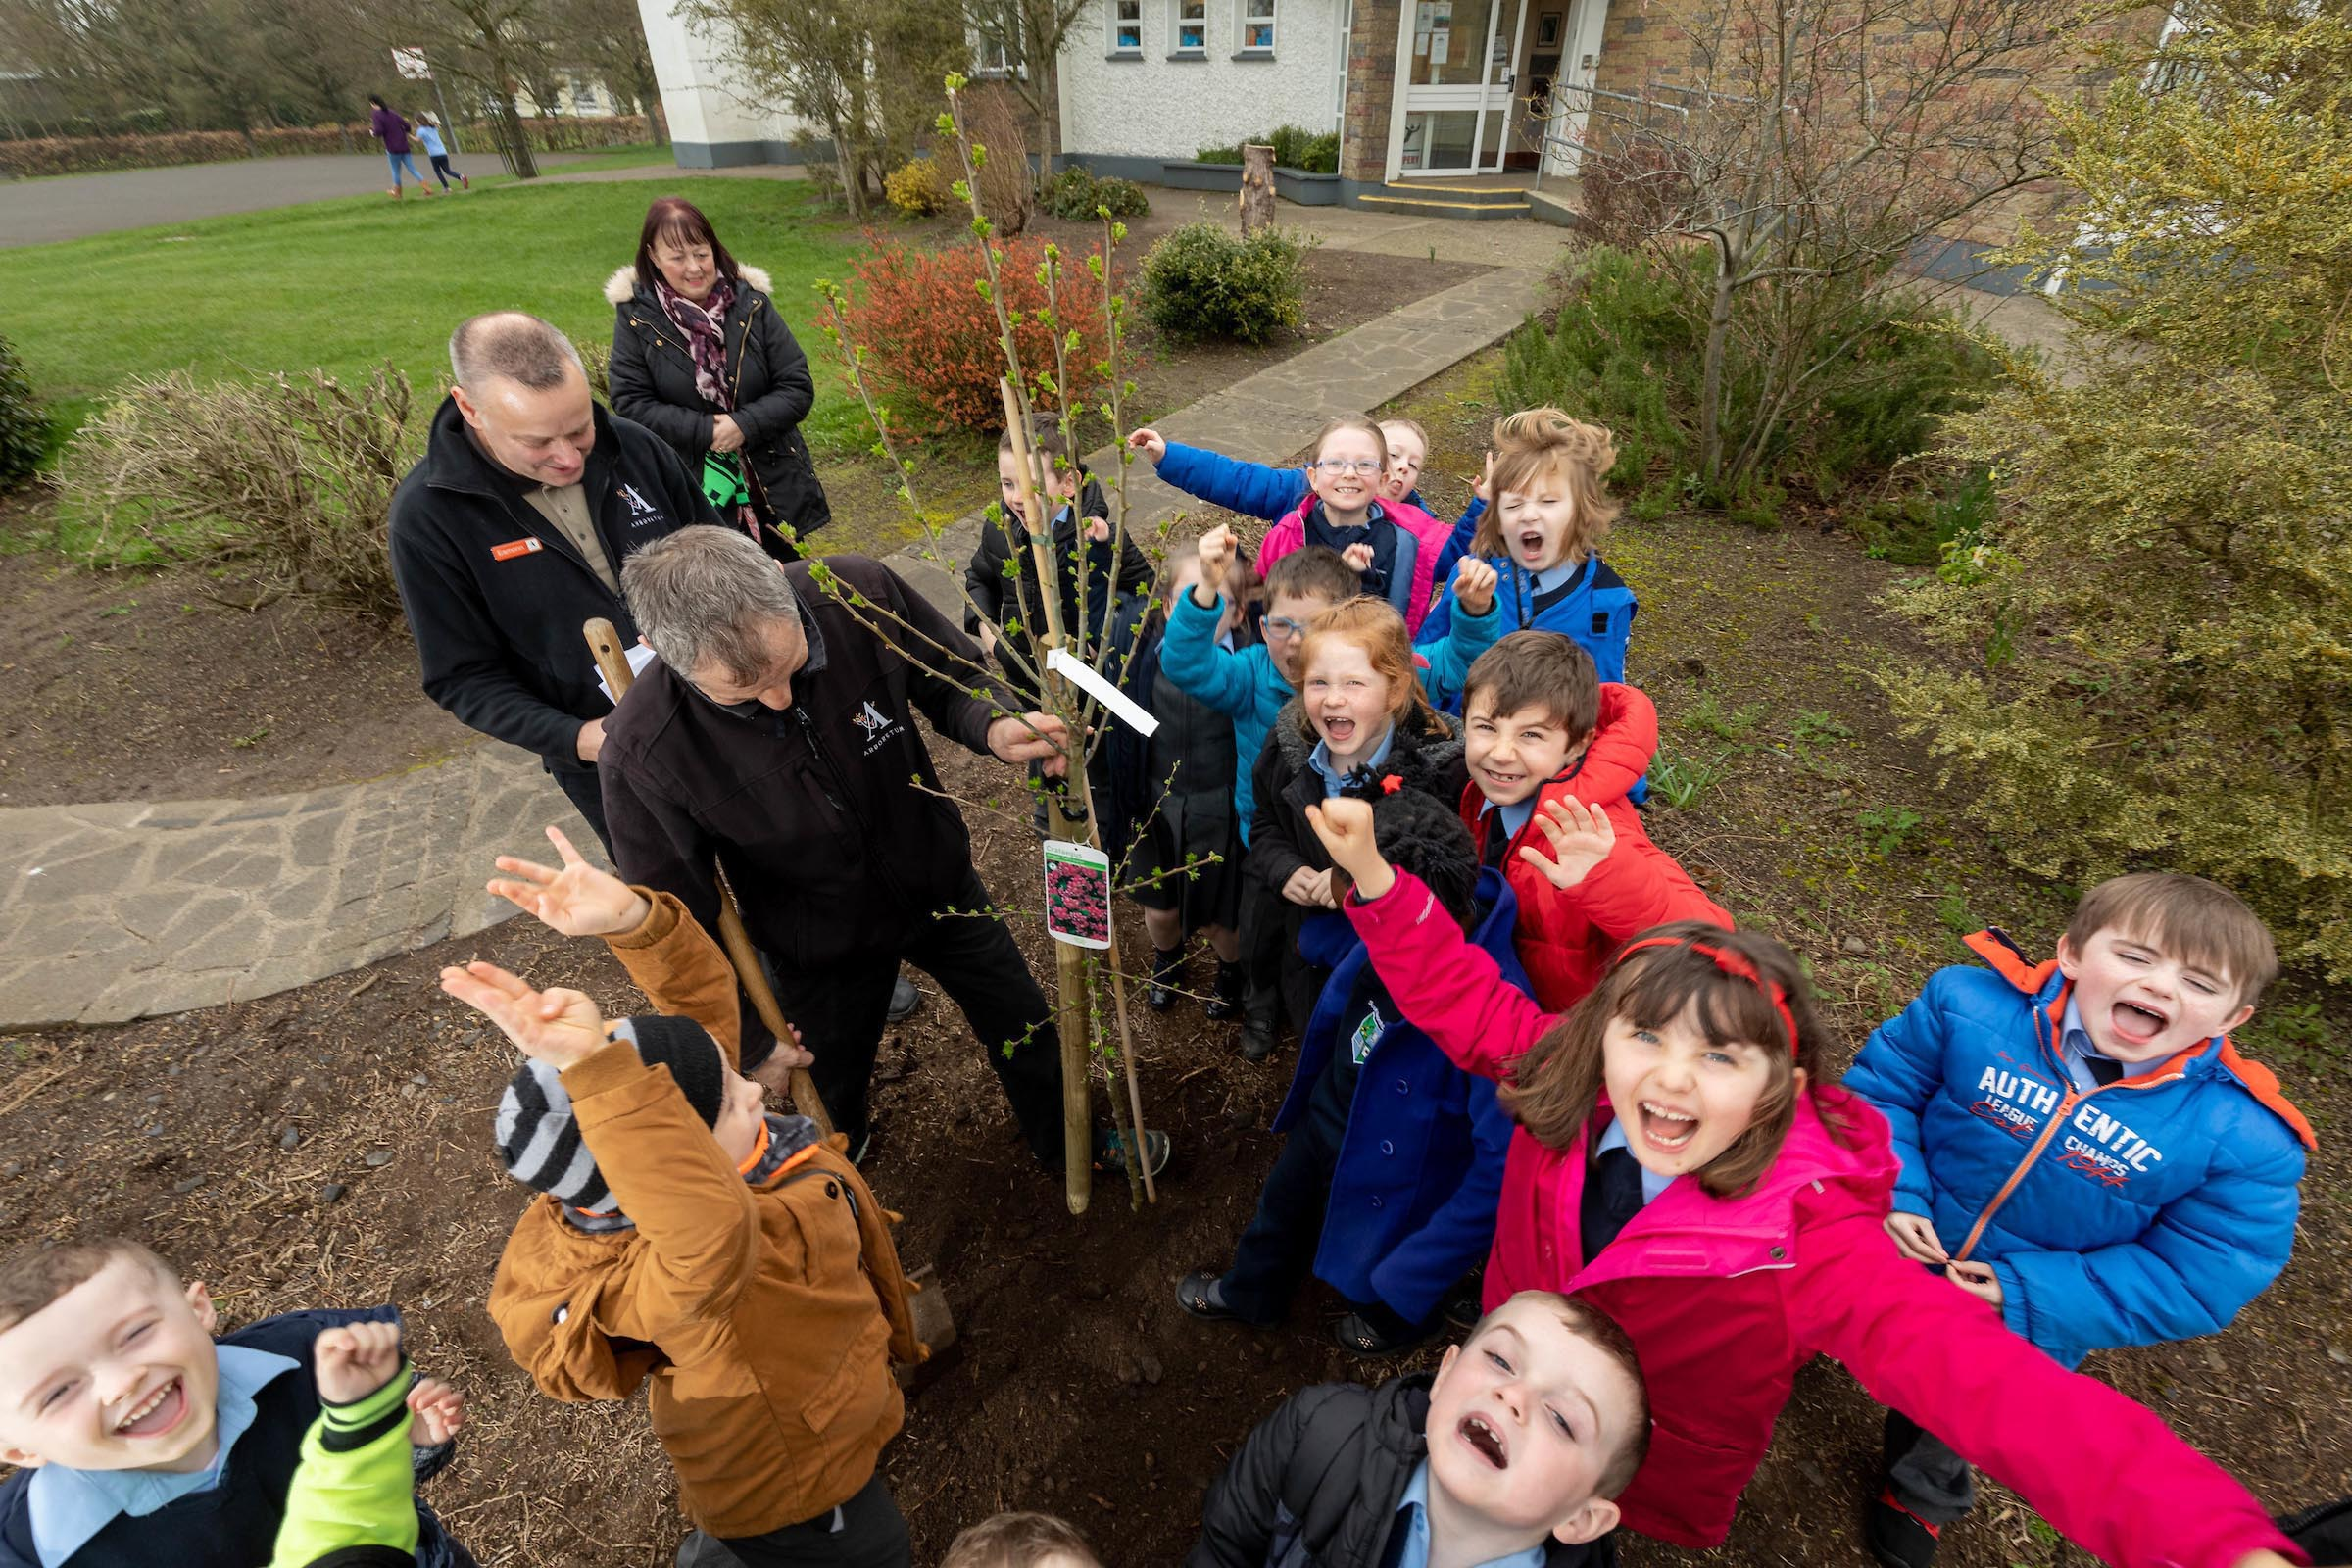 "Eamonn Wall of Arboretum Garden Centre in Carlow planting the first tree at Leighlinbridge National School to launch the Arboretum ""We only have one planet' campaign with principle Orfhlaith Mealy  and pupils from the senior infants class. for further information please contact Sarah Corr  01 6789888  O'Leary PR"